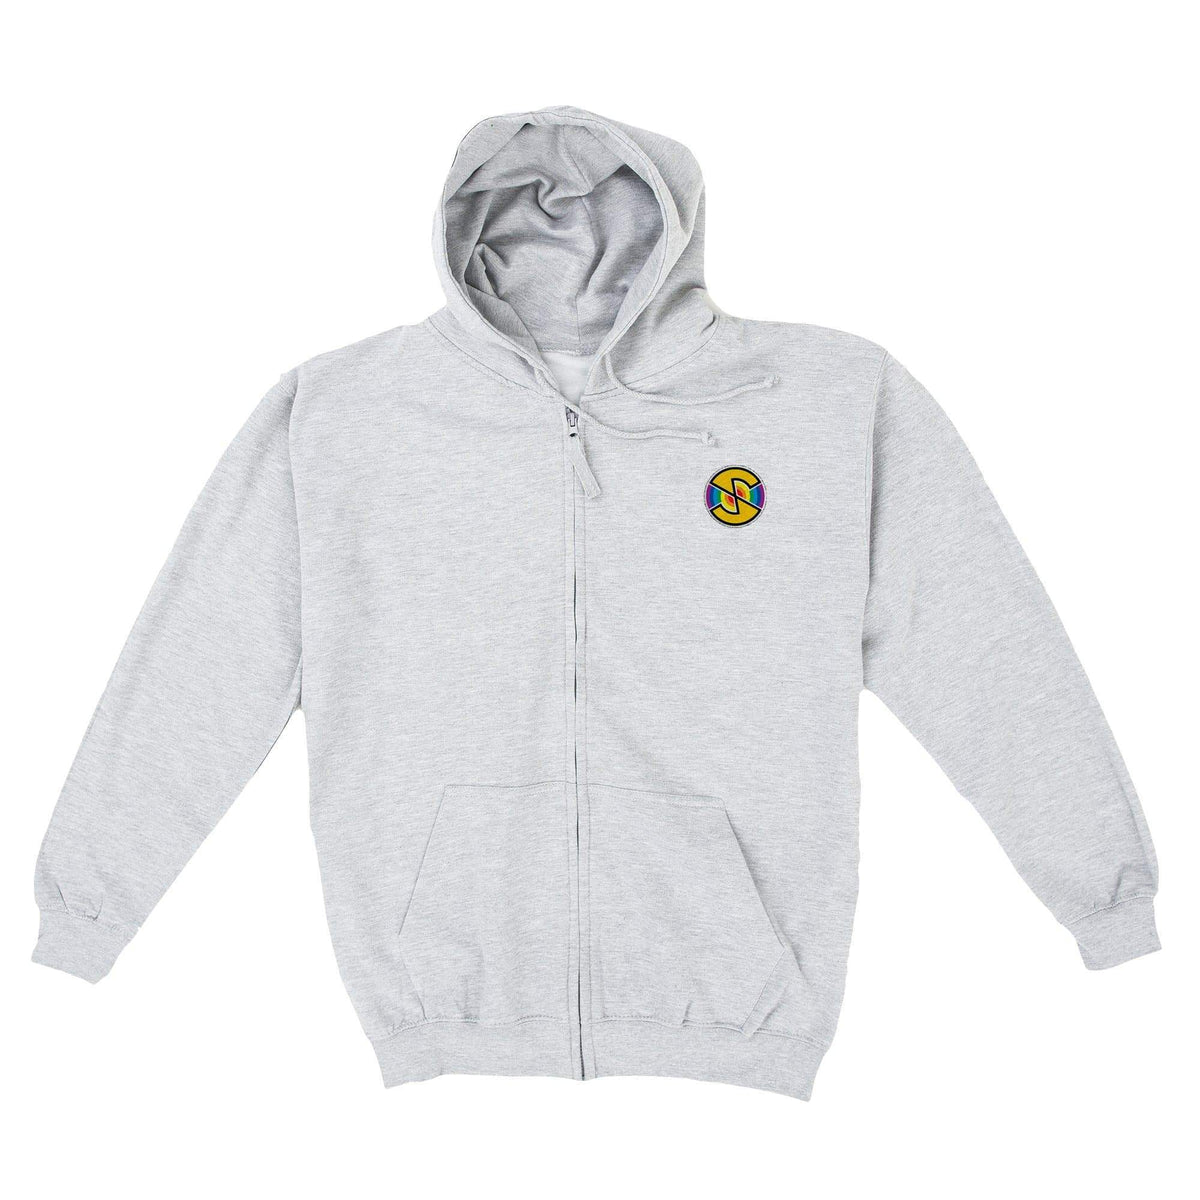 Captain Scarlet Spectrum Men's Zipped Hoodie with Embroidery [Official & Exclusive] - The Gerry Anderson Store